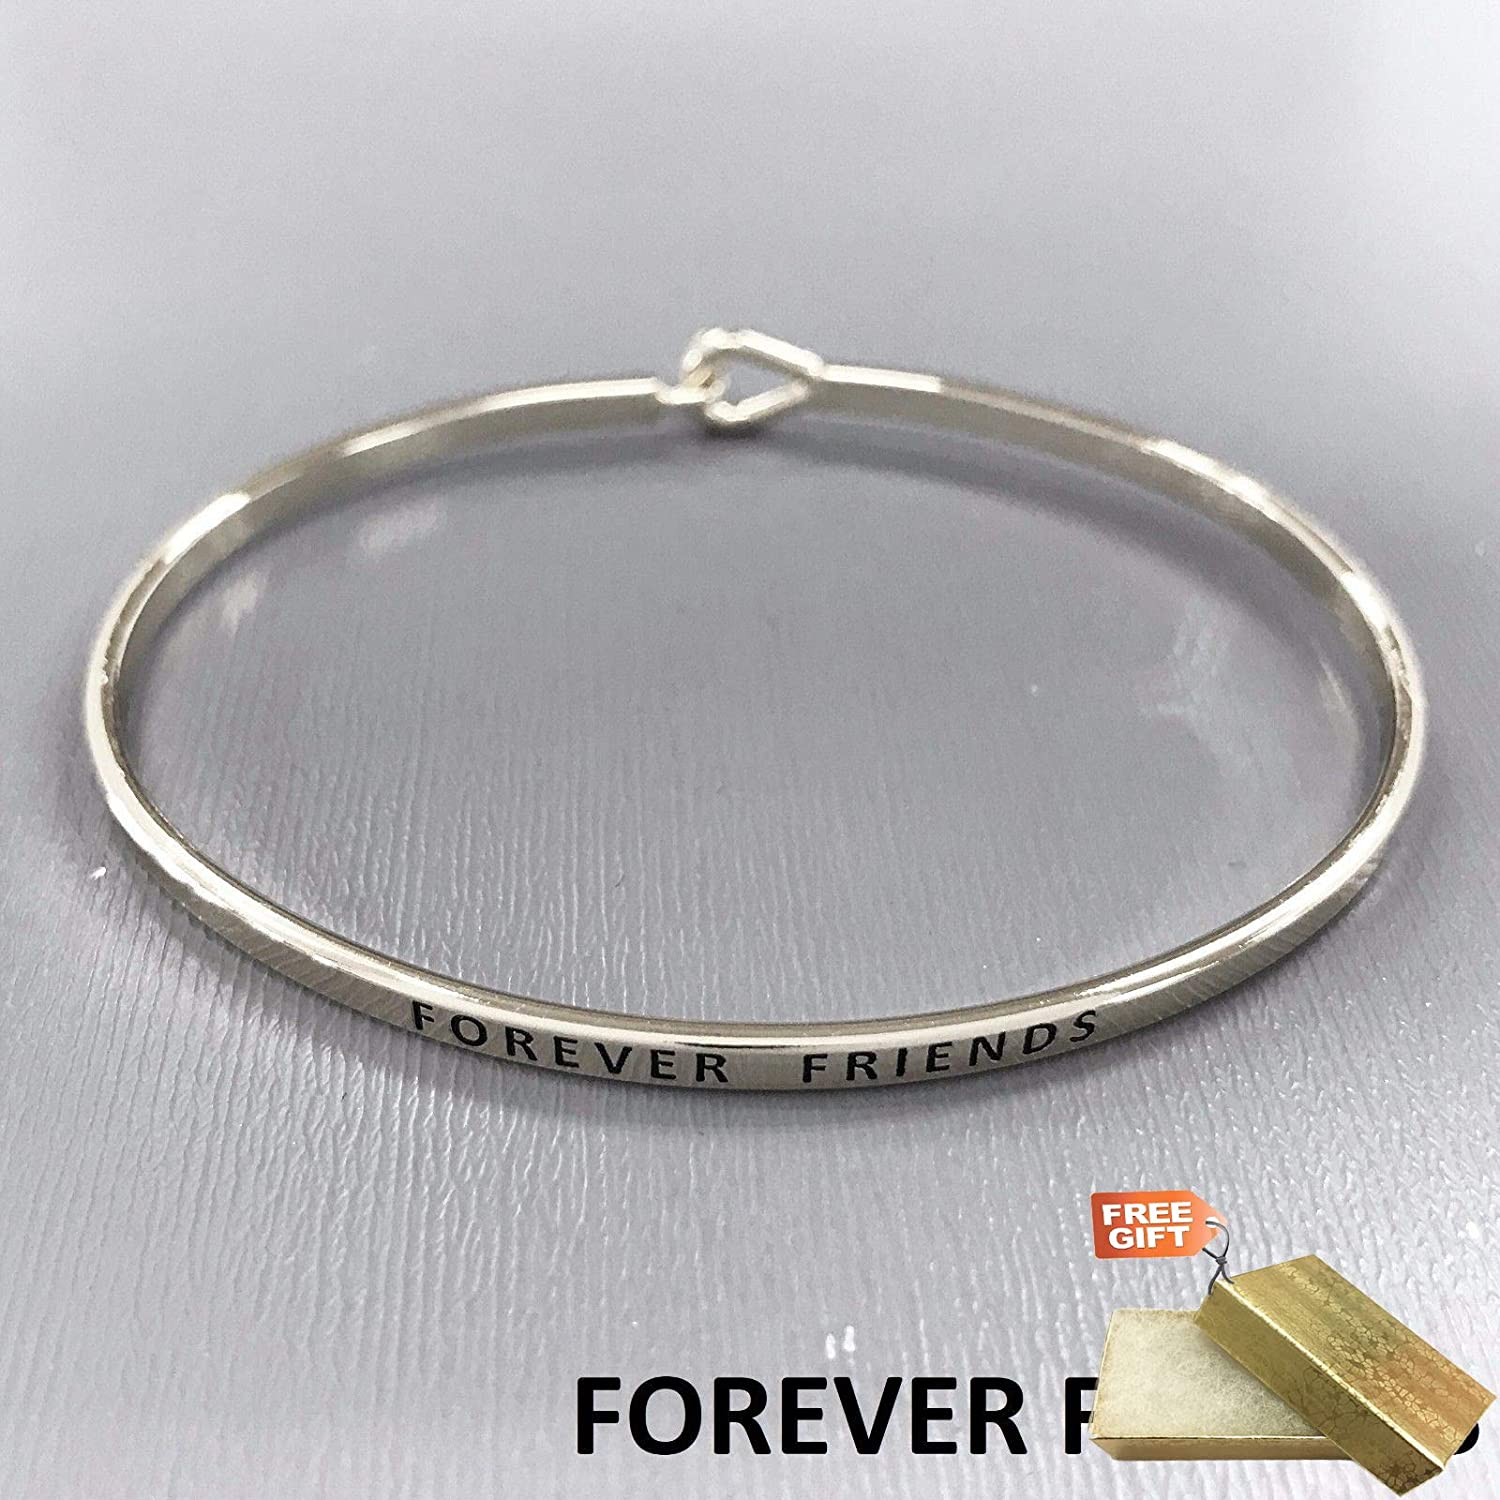 Silver Finished FOREVER FRIENDS Message Engraved Brass Plated Bangle Fashion Jewelry Bracelet For Women Gold Cotton Filled Gift Box for Free